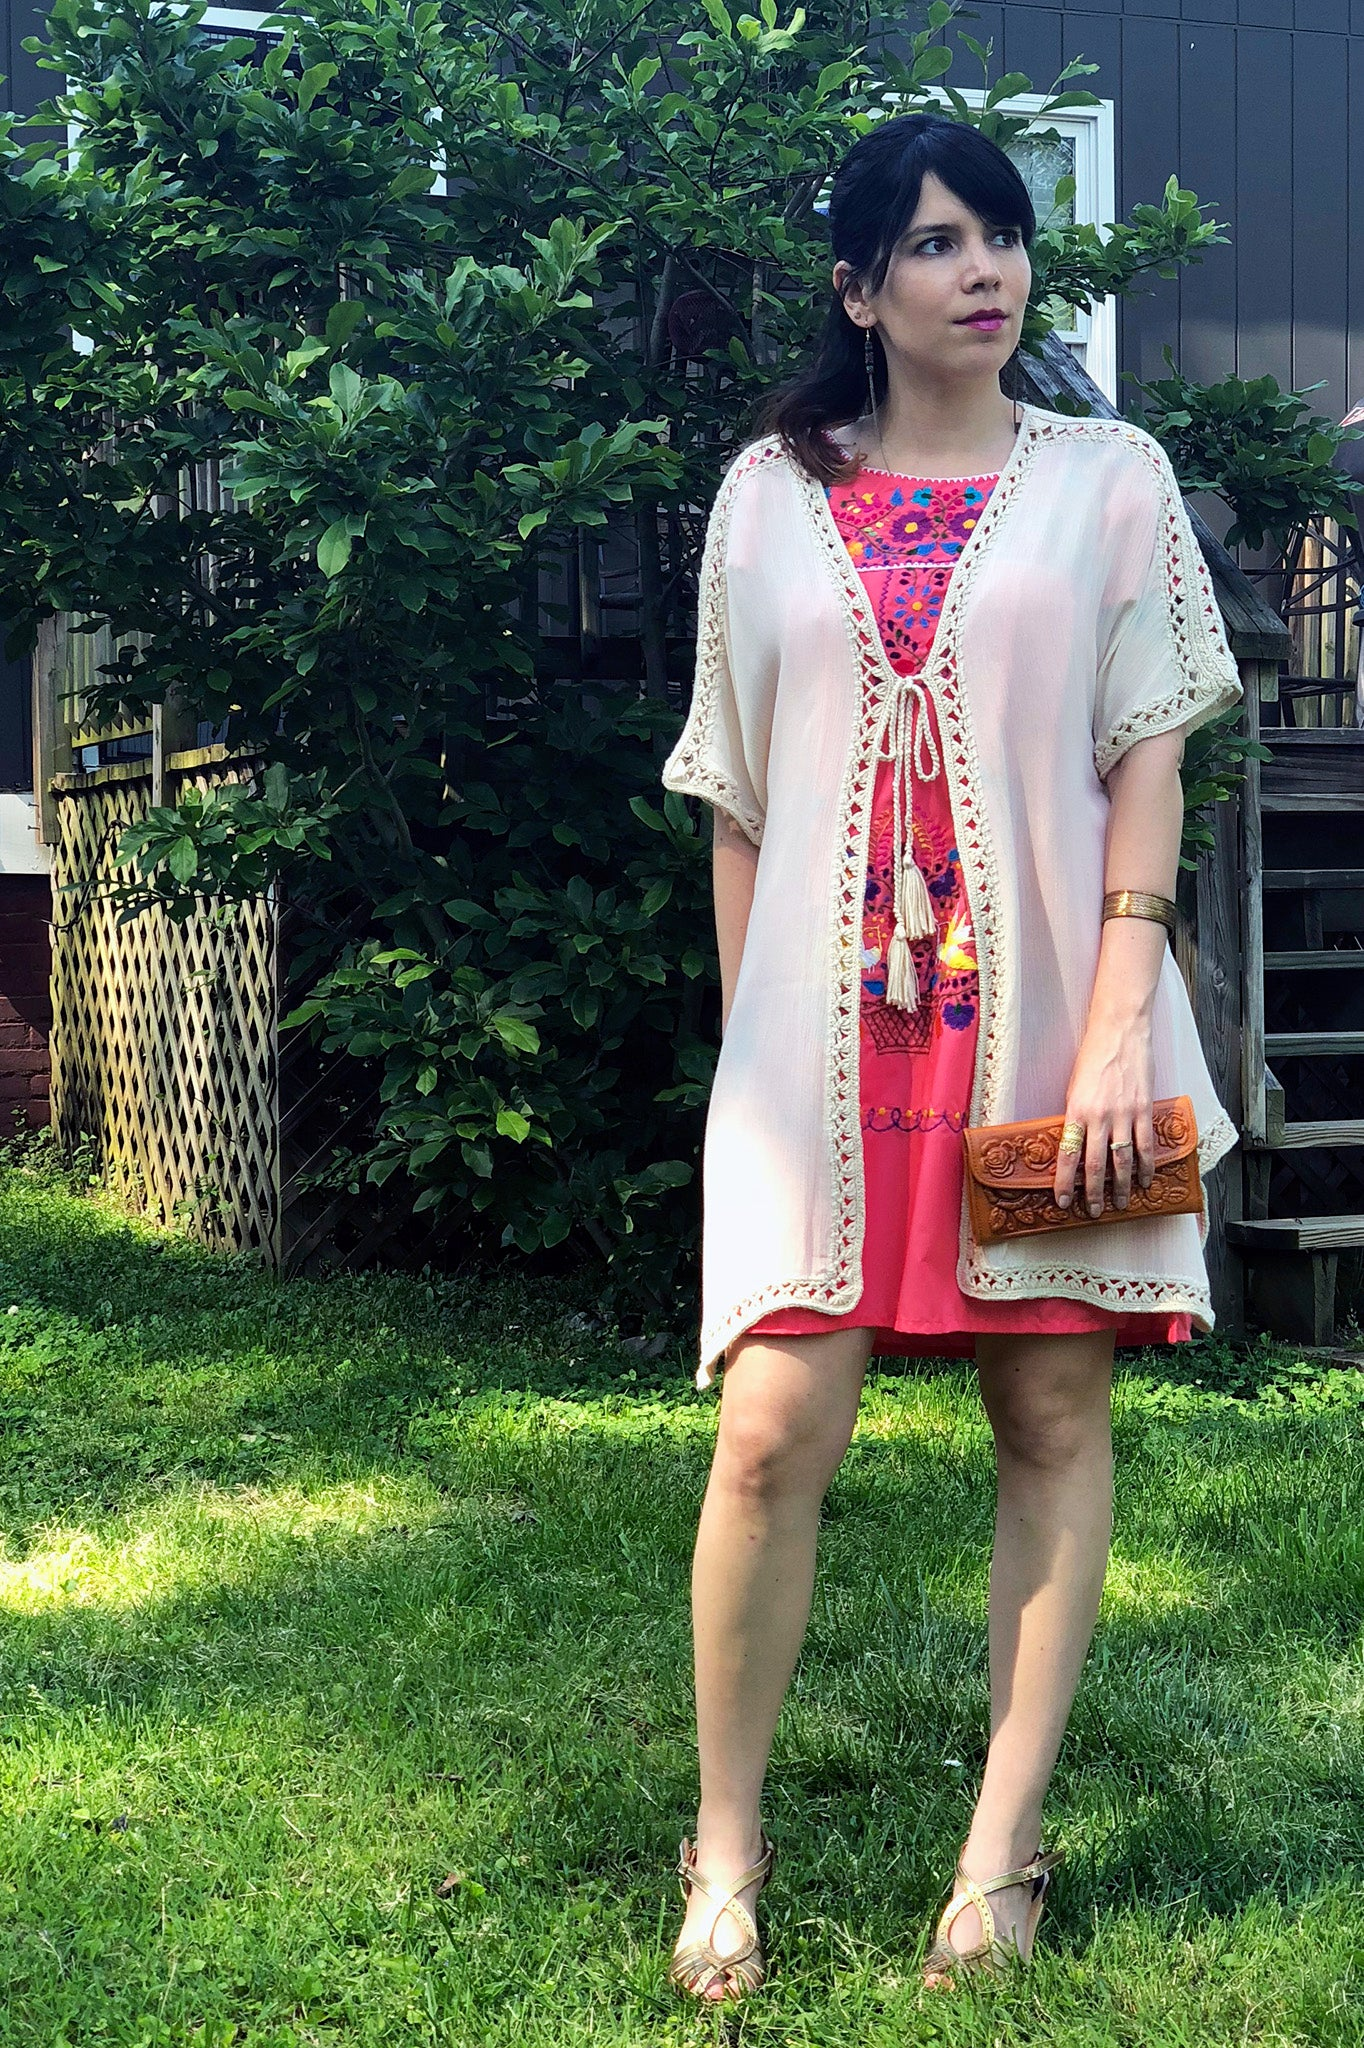 ShopMucho owner models Mucho merch, women's Mexican dress styled 3 ways